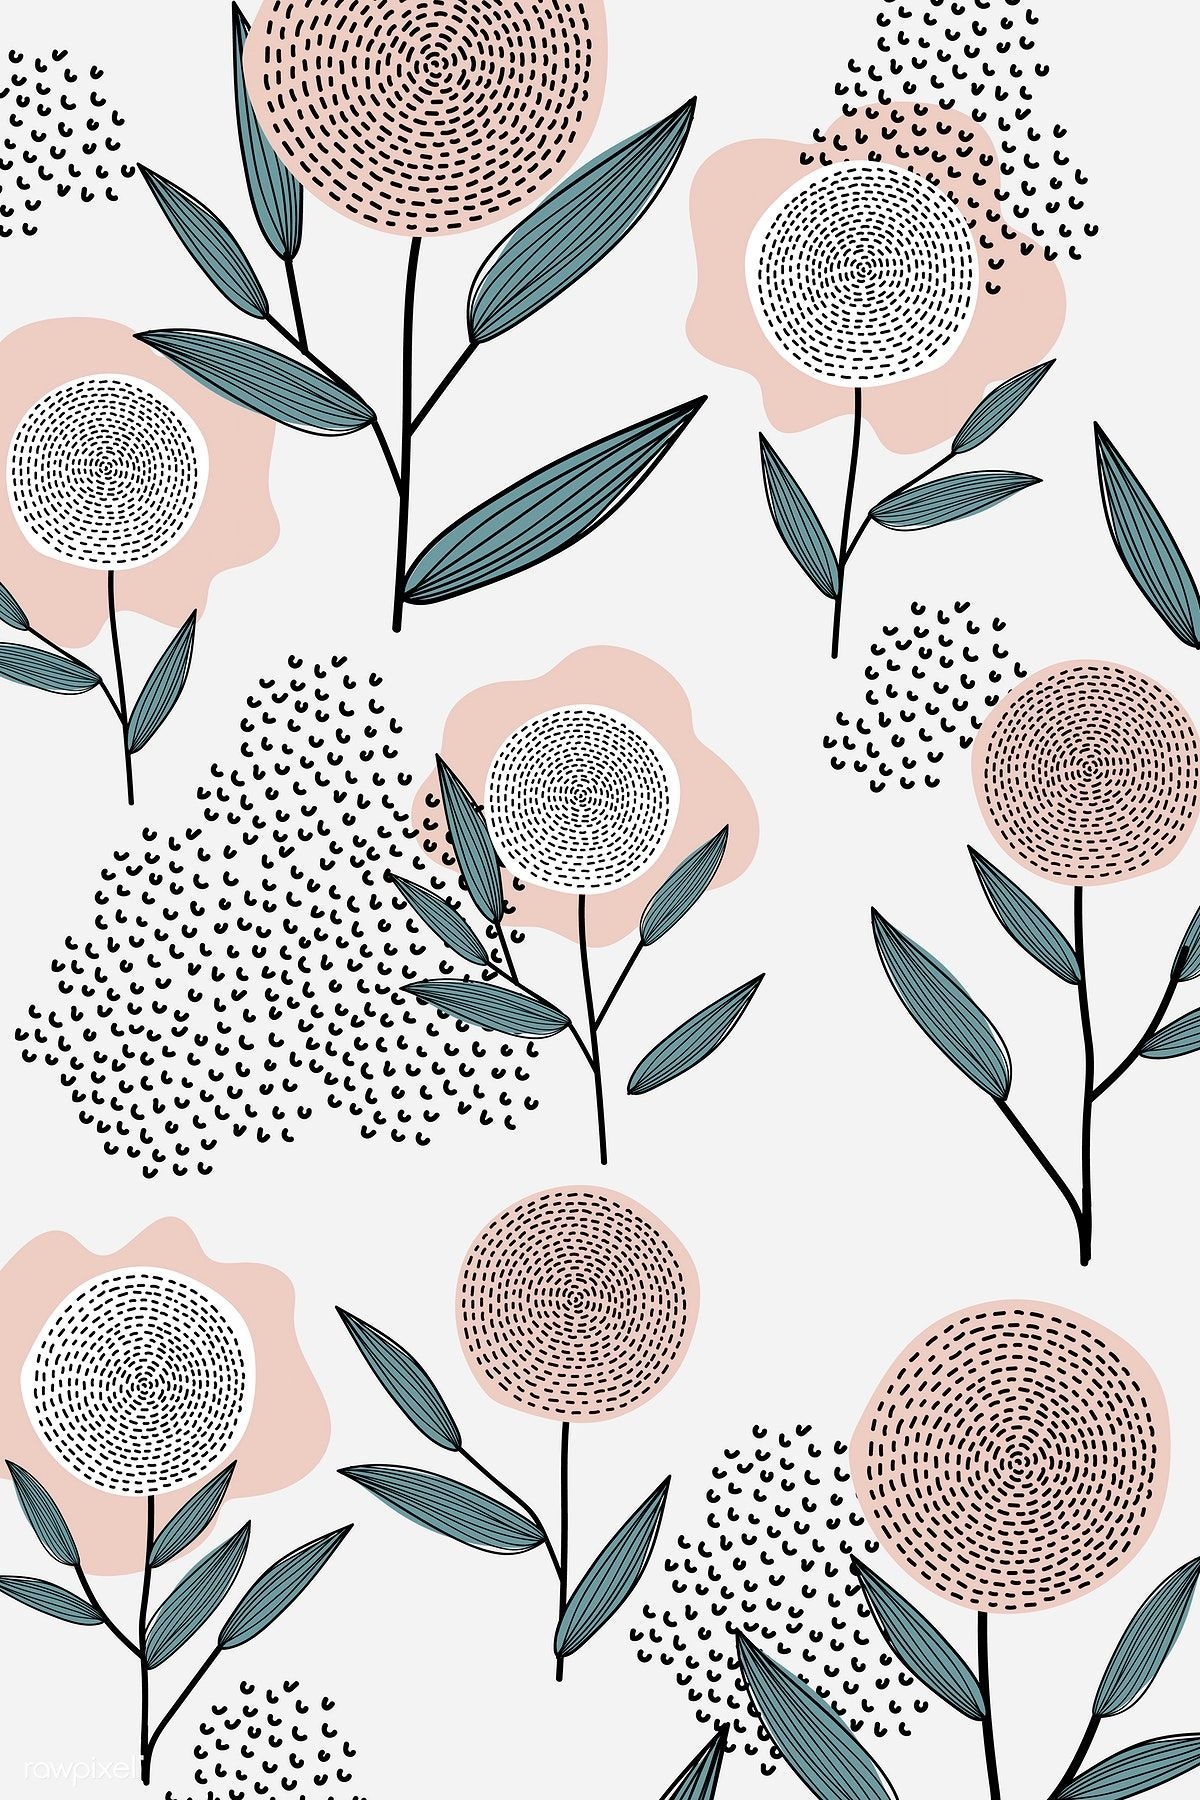 Download premium vector of Flower patterned white background vector 893044 #flow...